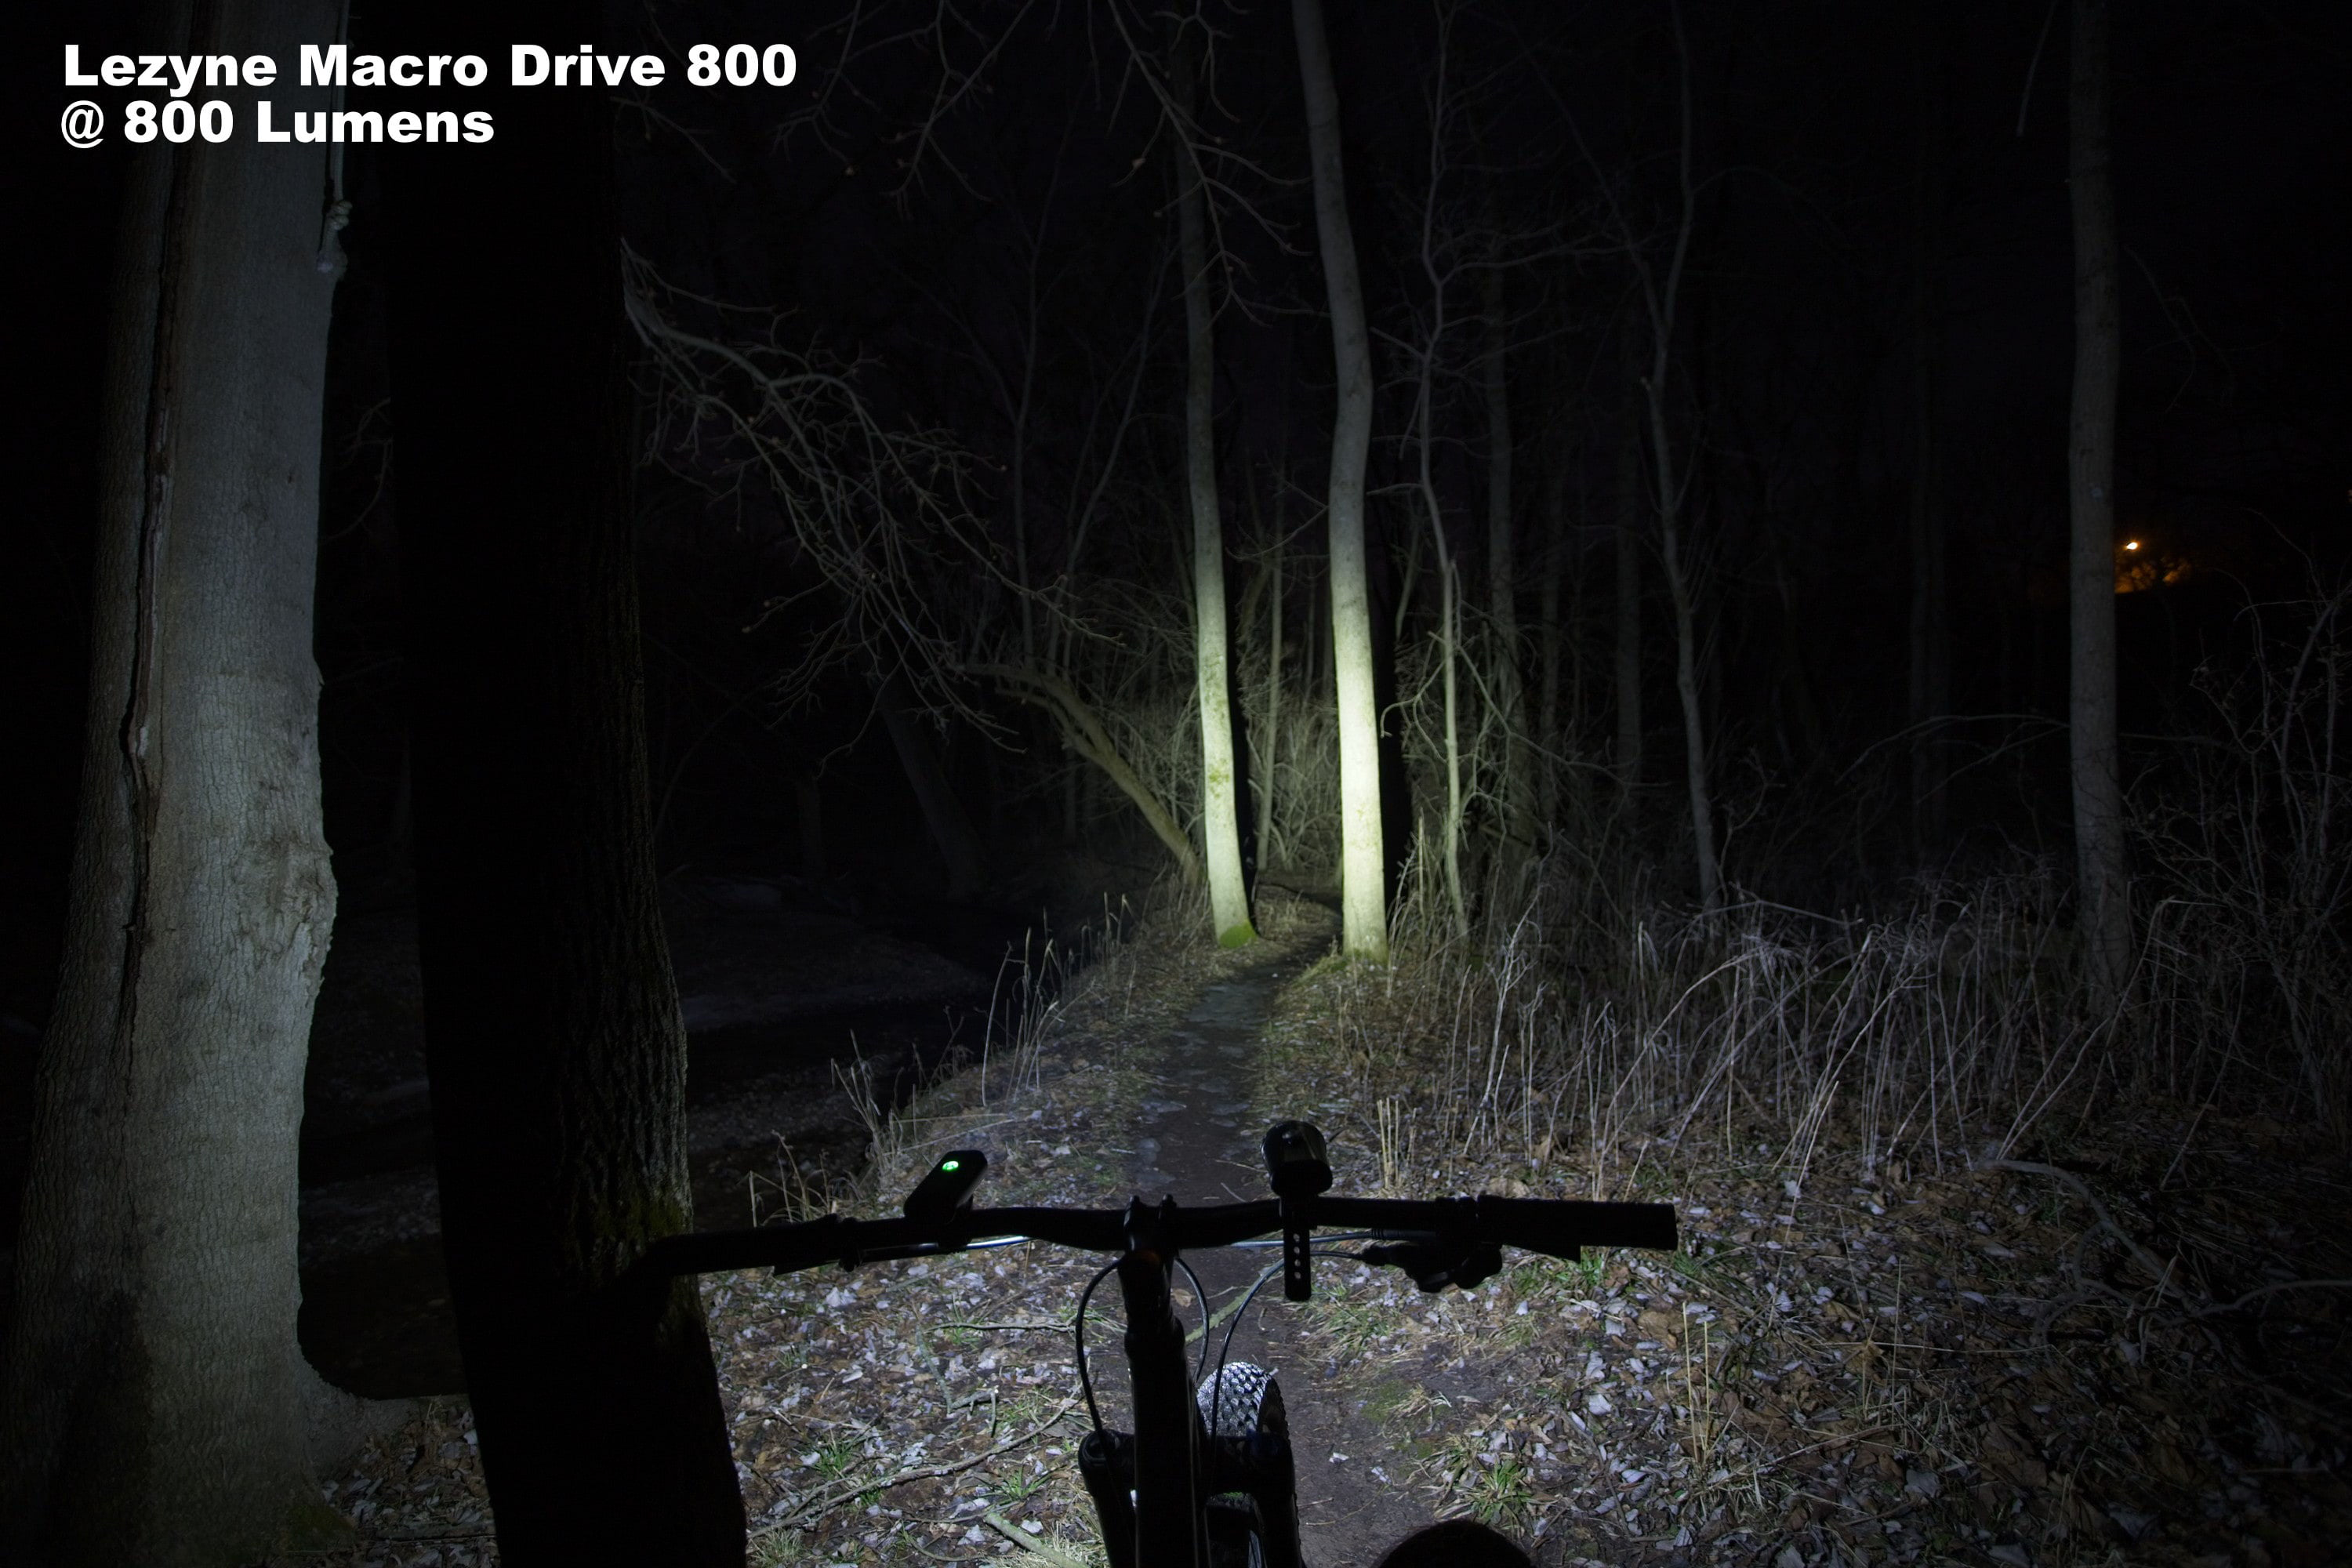 Lezyne at 800 Lumens